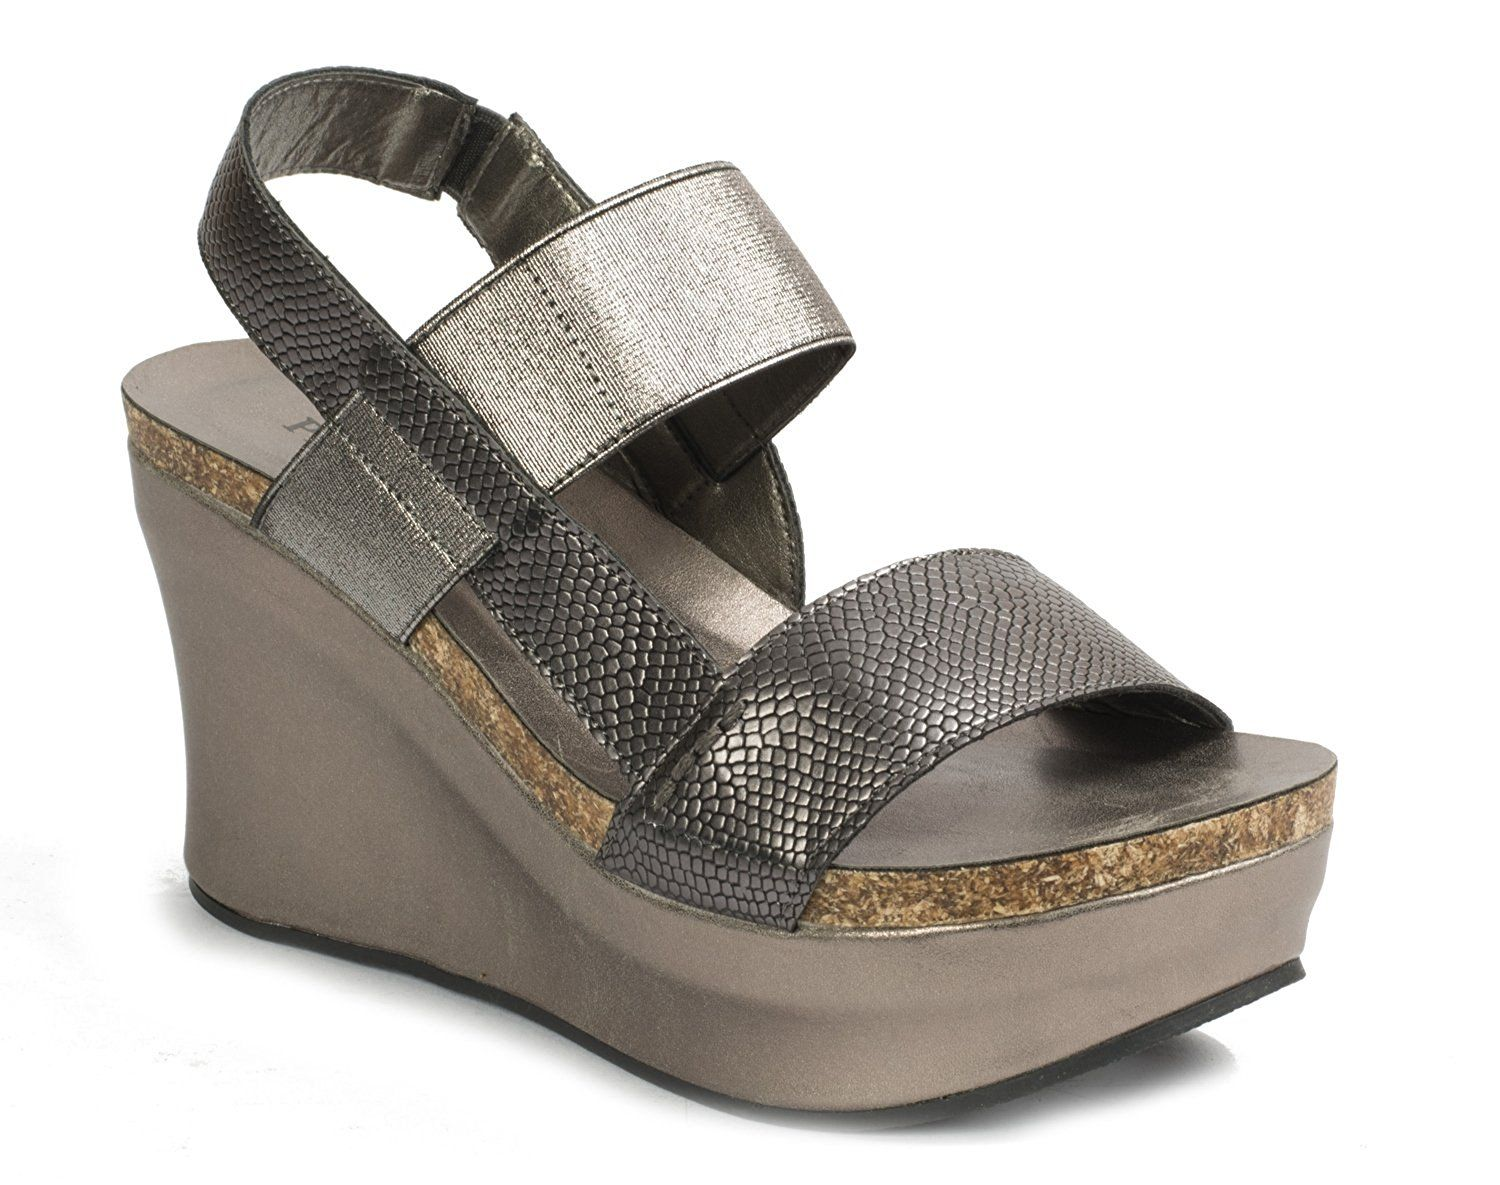 404ab30e3bf Pierre Dumas Hester-8 Women s Strappy Platform Wedge Sandals   Check out  this great product. (This is an affiliate link)  shoestrend